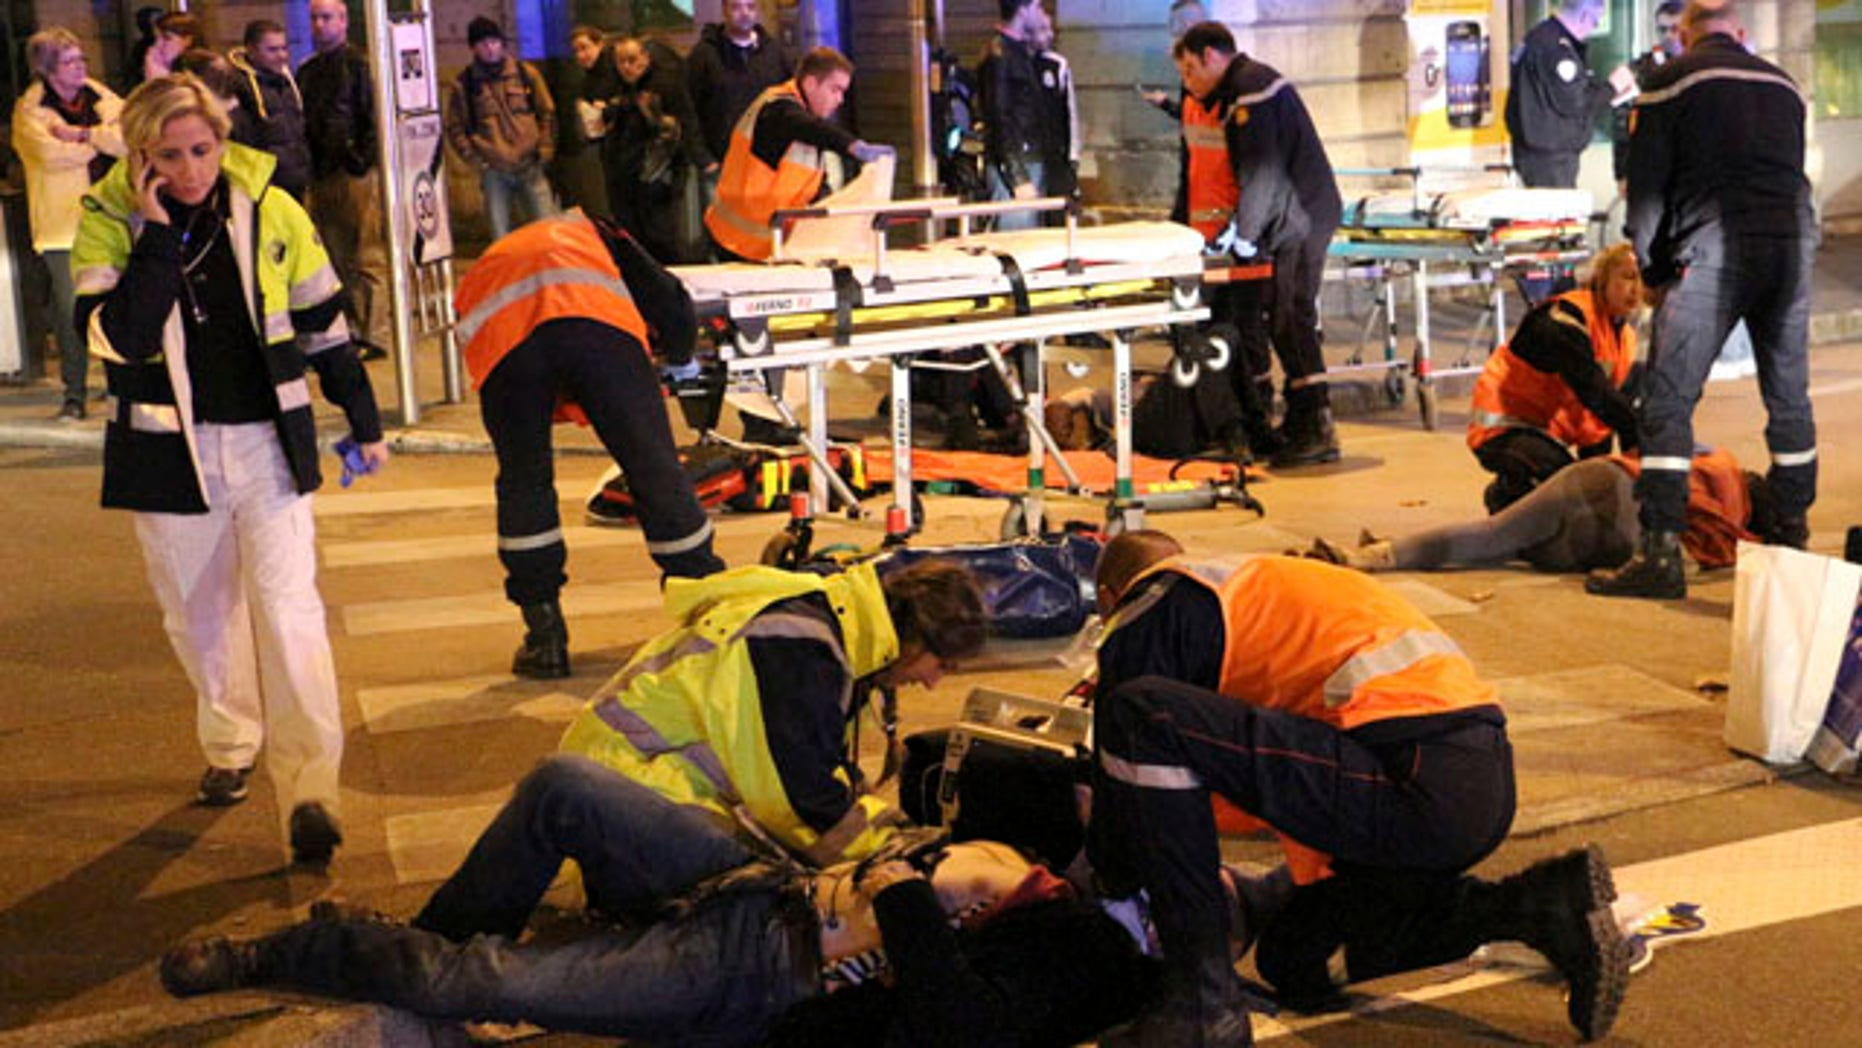 Dec. 21, 2014: This photo provided by local newspaper Le Bien Public shows rescue workers tending at victims after a driver deliberately slammed into passersby in several spots in Dijon, central France. (AP Photo/Christian Guileminot; Le Bien Public)